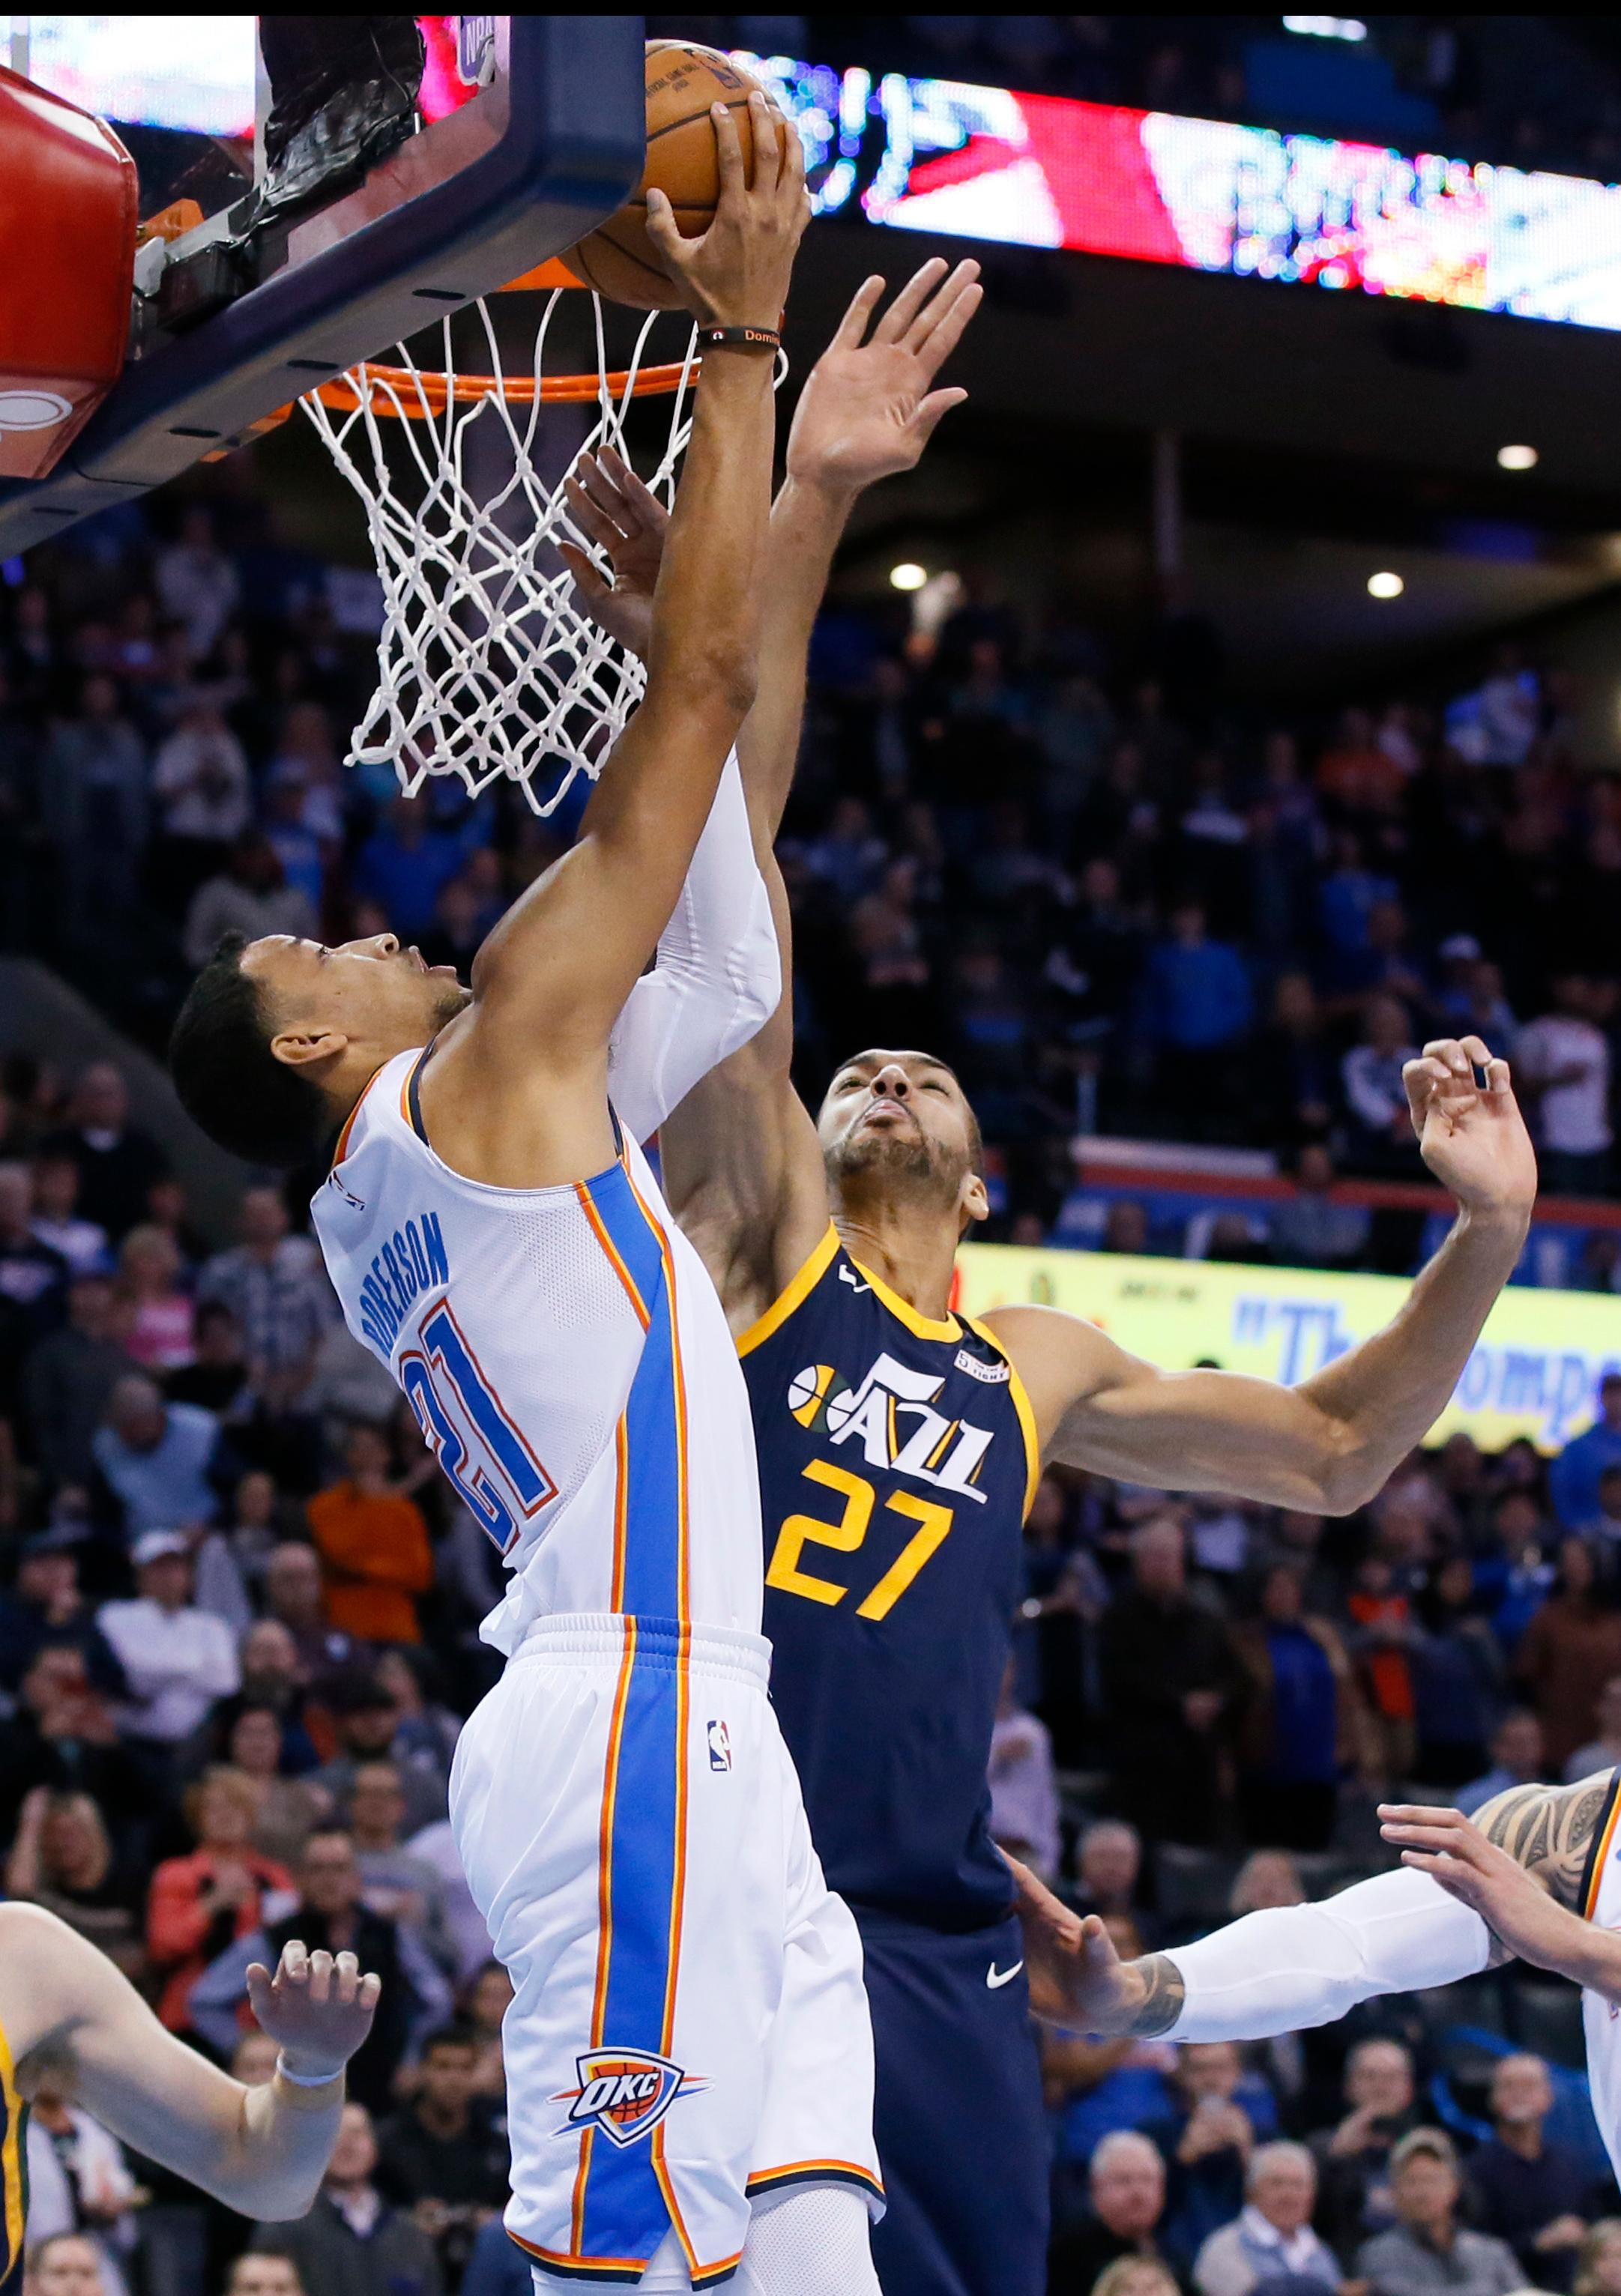 Oklahoma City Thunder guard Andre Roberson (21) shoots in front of Utah Jazz center Rudy Gobert (27) in the first quarter of an NBA basketball game in Oklahoma City, Tuesday, Dec. 5, 2017. (AP Photo/Sue Ogrocki)